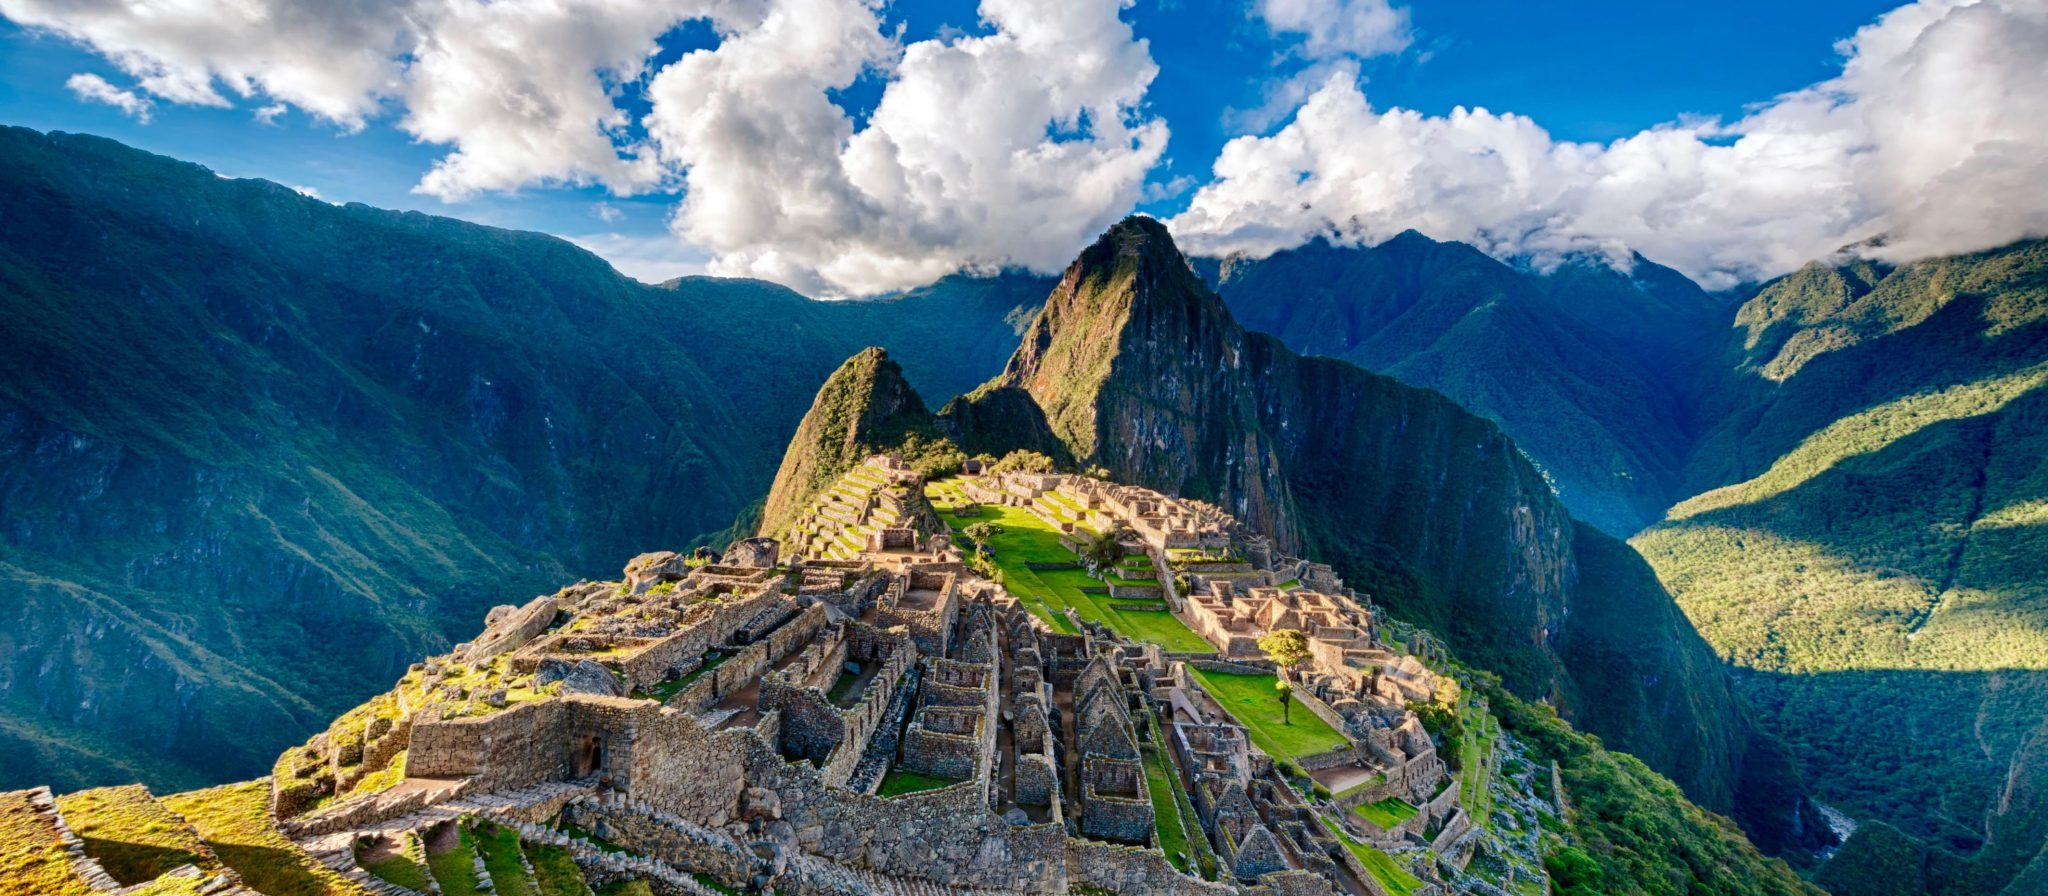 Machu Picchu South America Luxury Travel